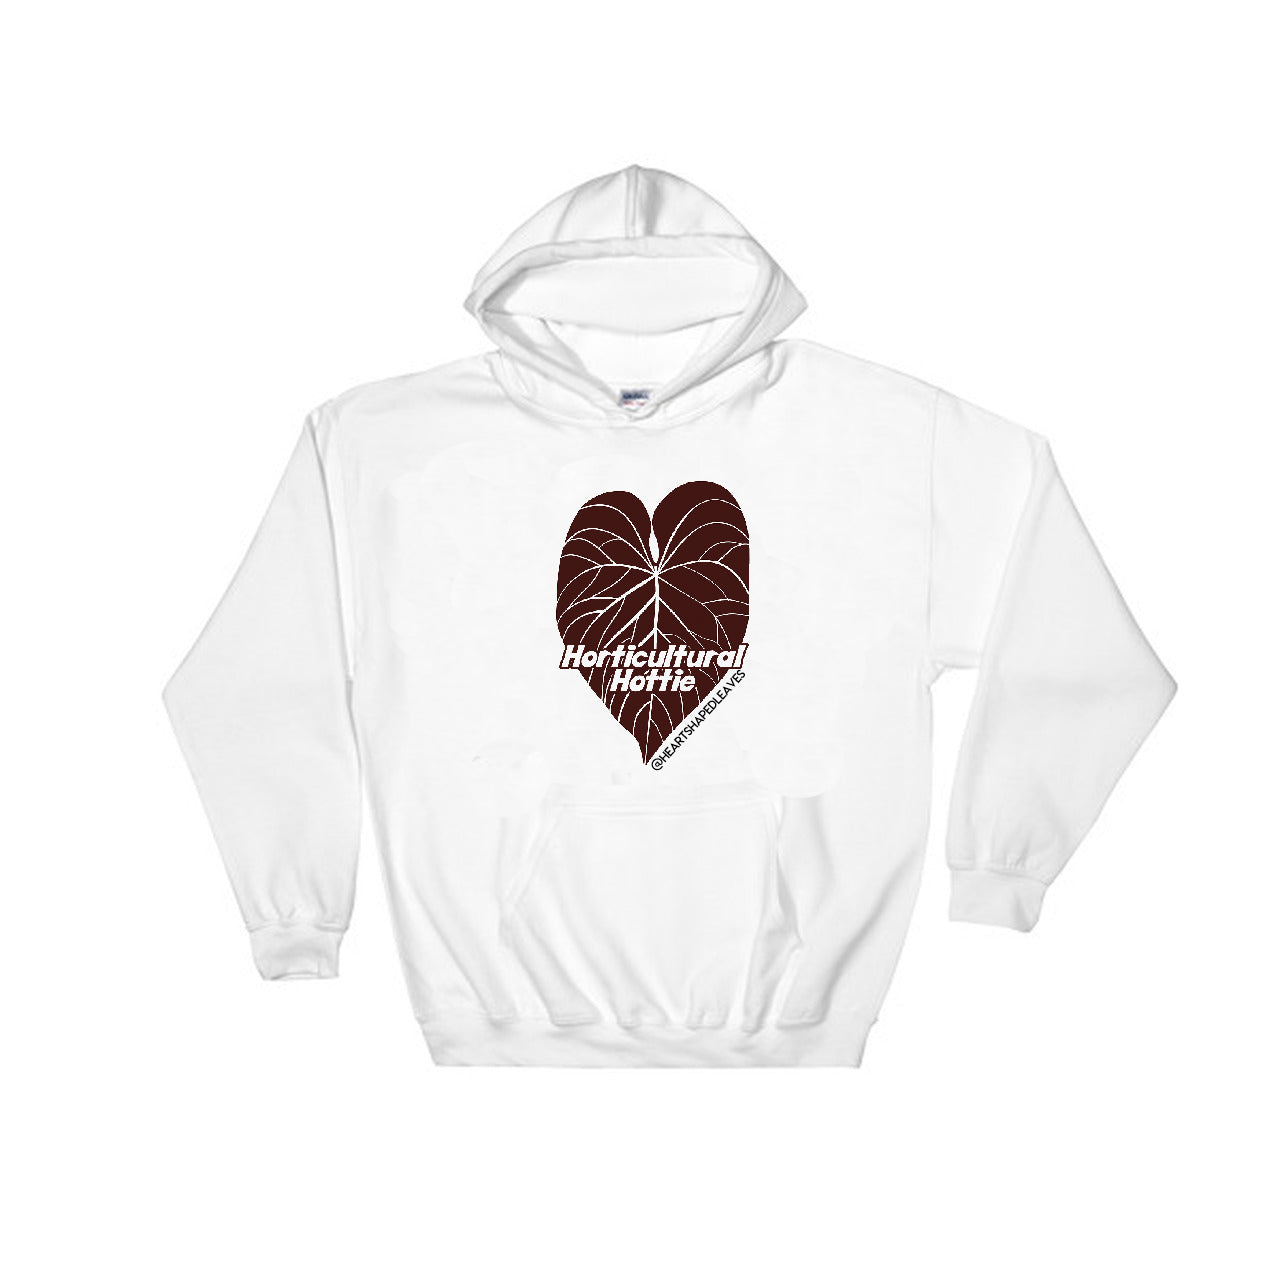 Horticultural Hottie Hoodie - Heart Shaped Leaves Merch